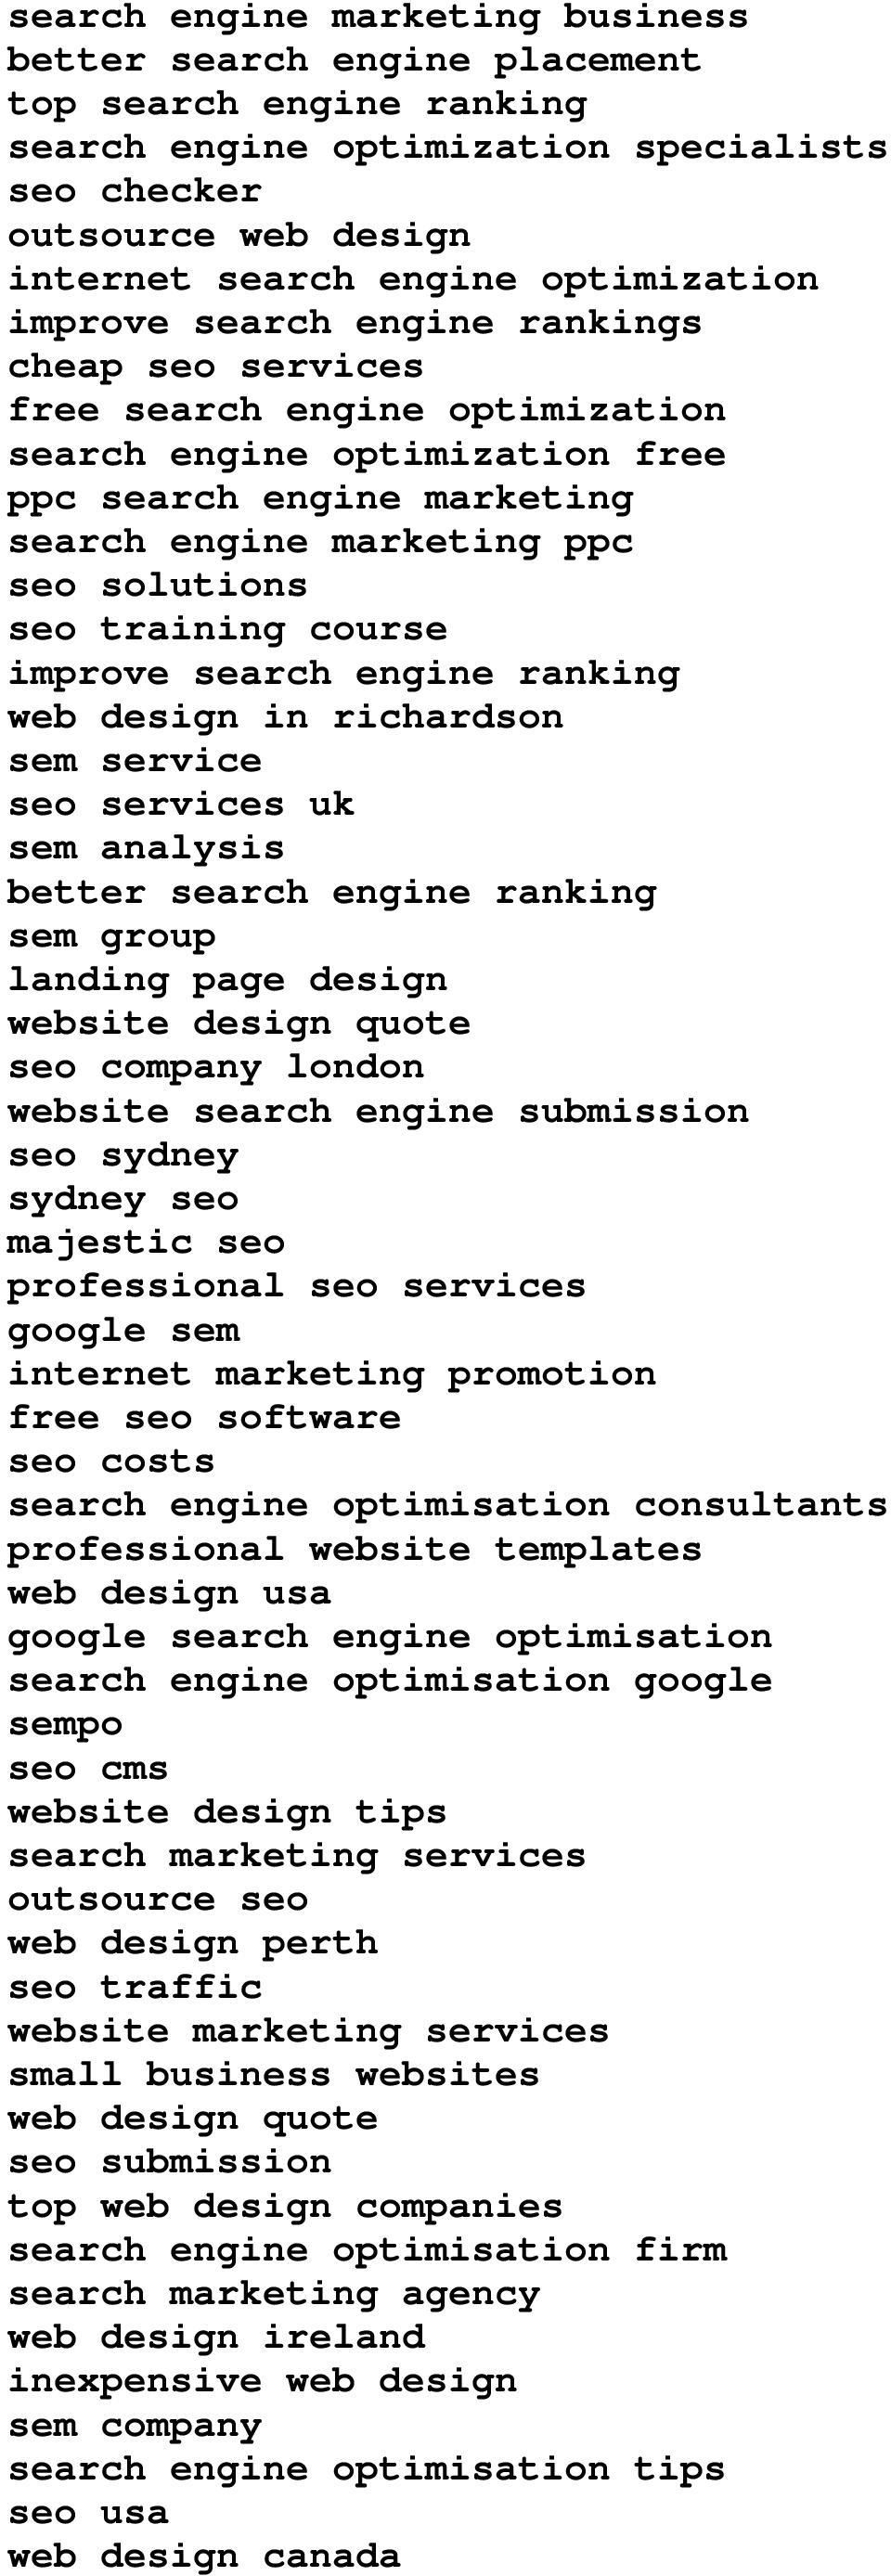 course improve search engine ranking web design in richardson sem service seo services uk sem analysis better search engine ranking sem group landing page design website design quote seo company